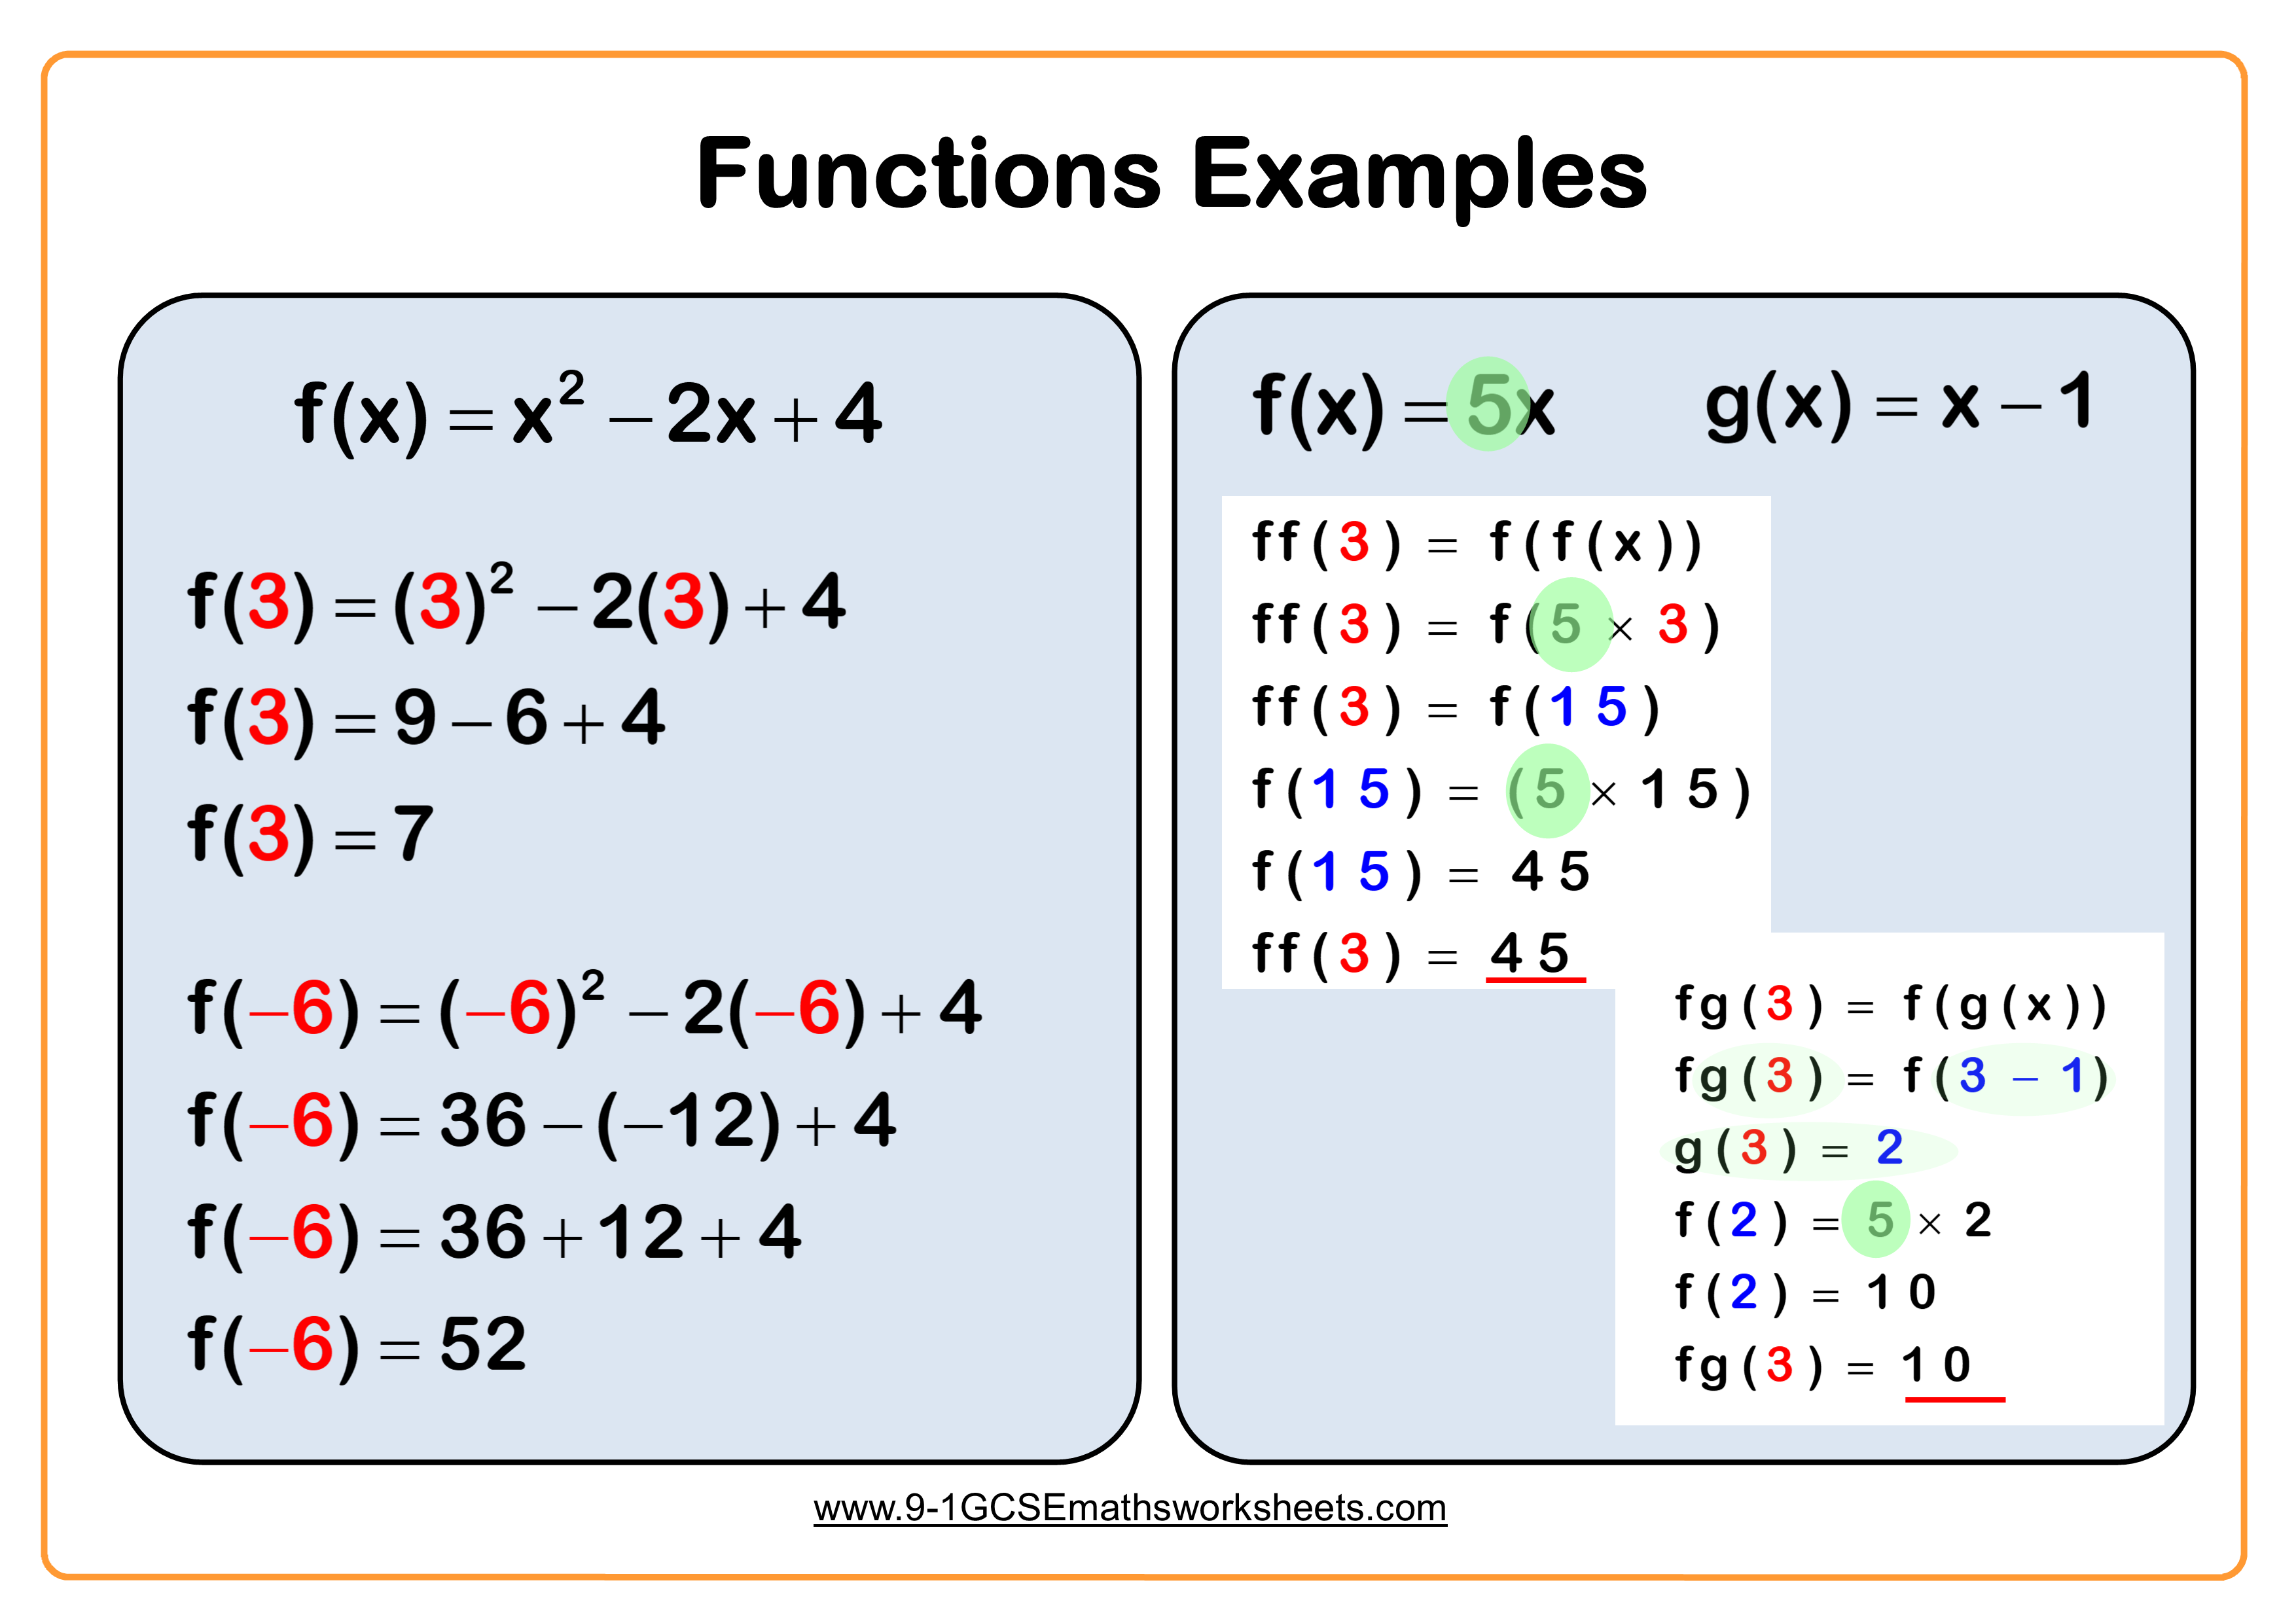 Functions Eamples For 9 1 Gcse Maths